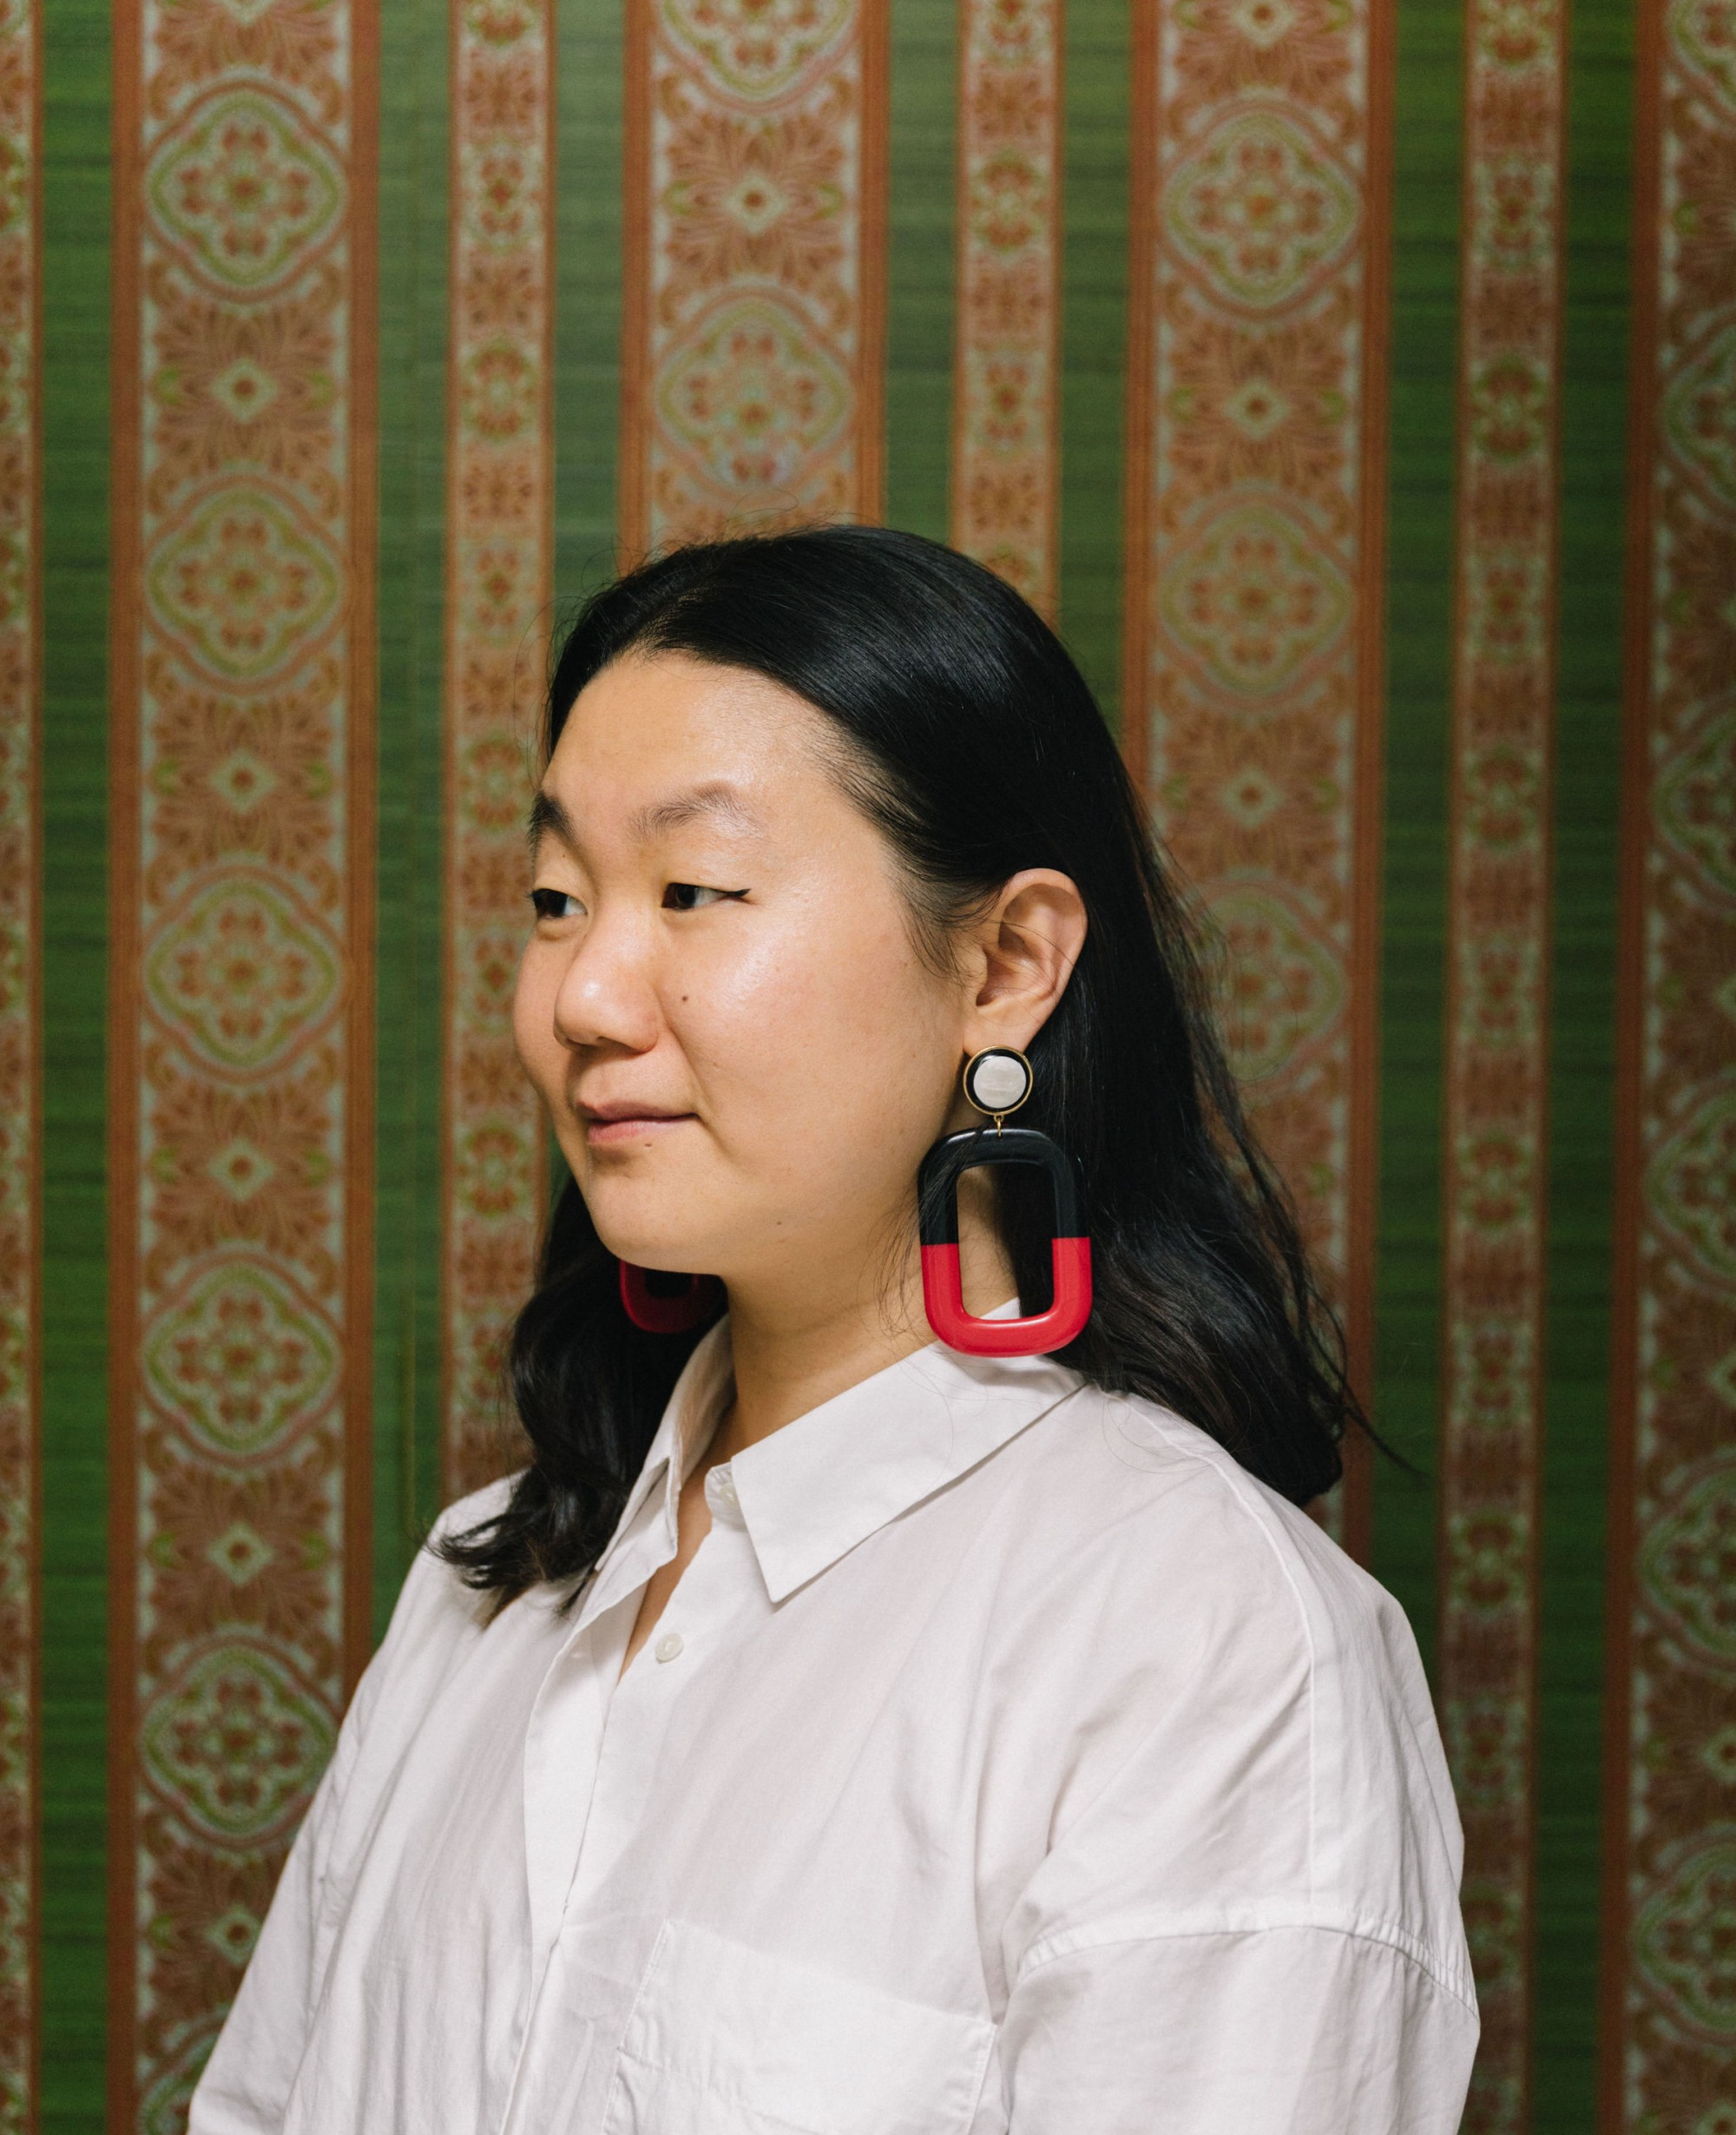 Wendy Xu stands in front of green and orange vertical striped wallpaper, wearing a white shirt and large red and black earrings, looking to the side.